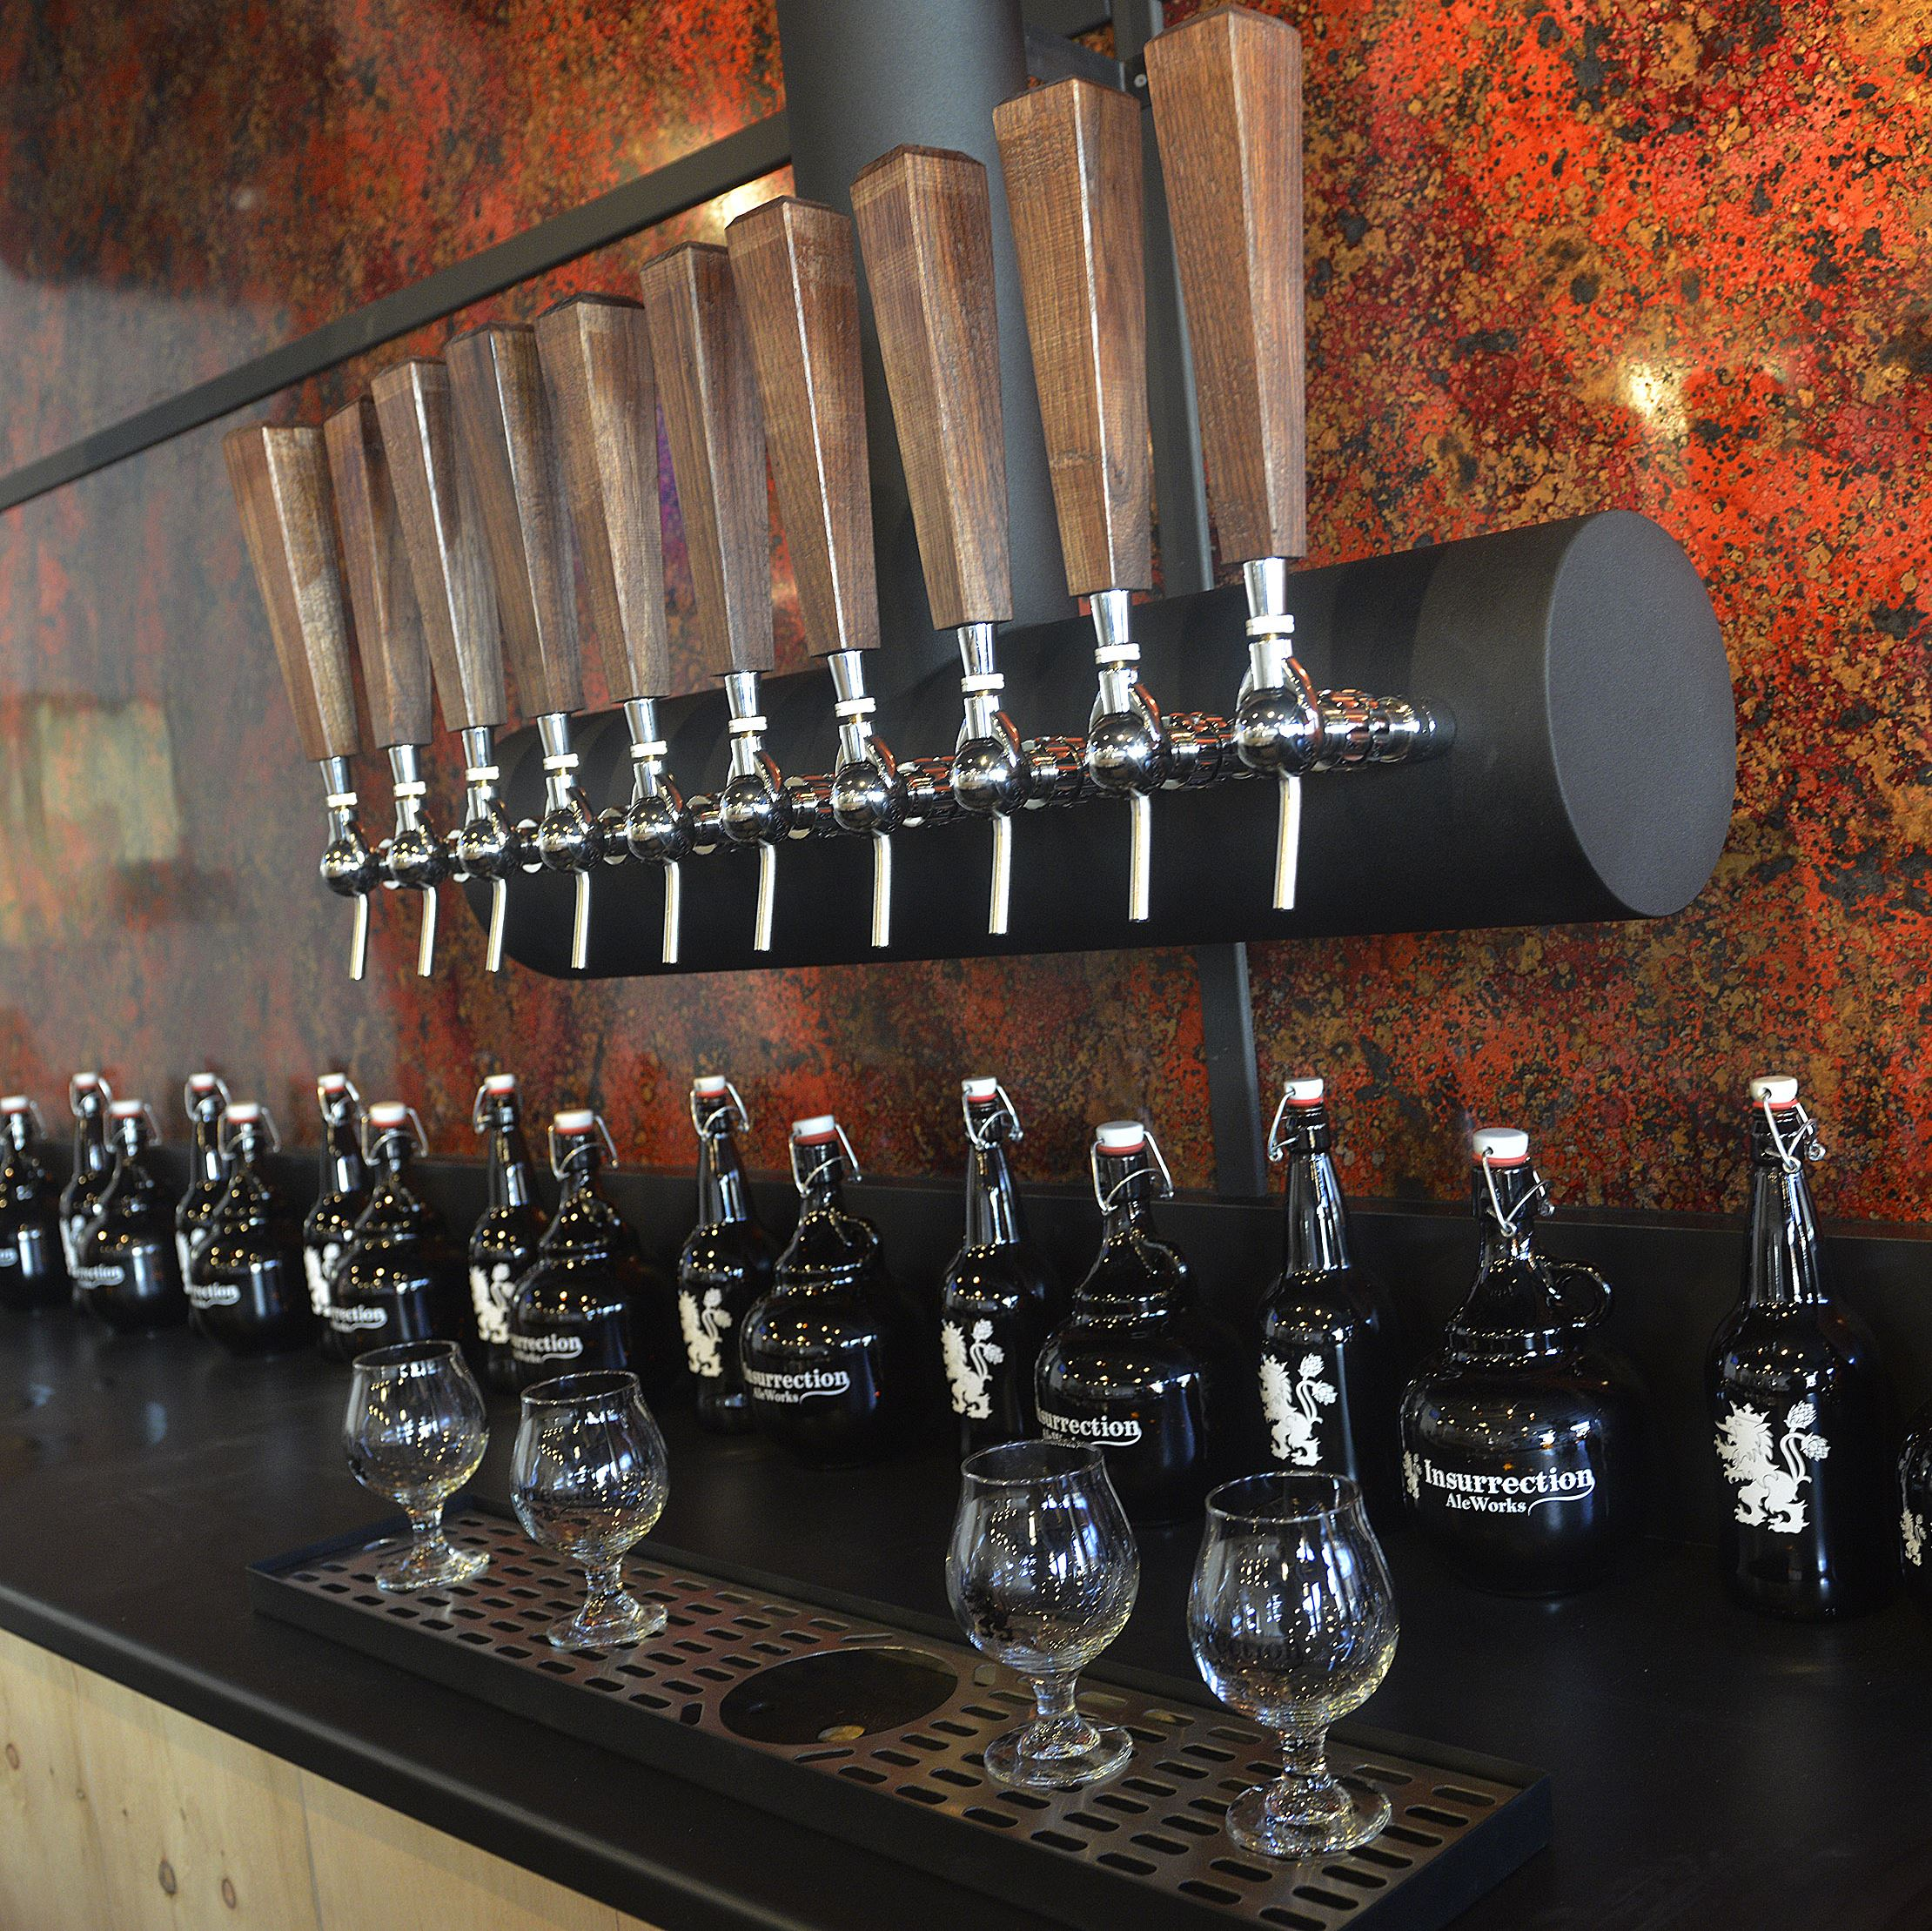 20151115lrinsurrectionmag02-8 Growlers and glasses sit on the back bar at Insurrection AleWorks.